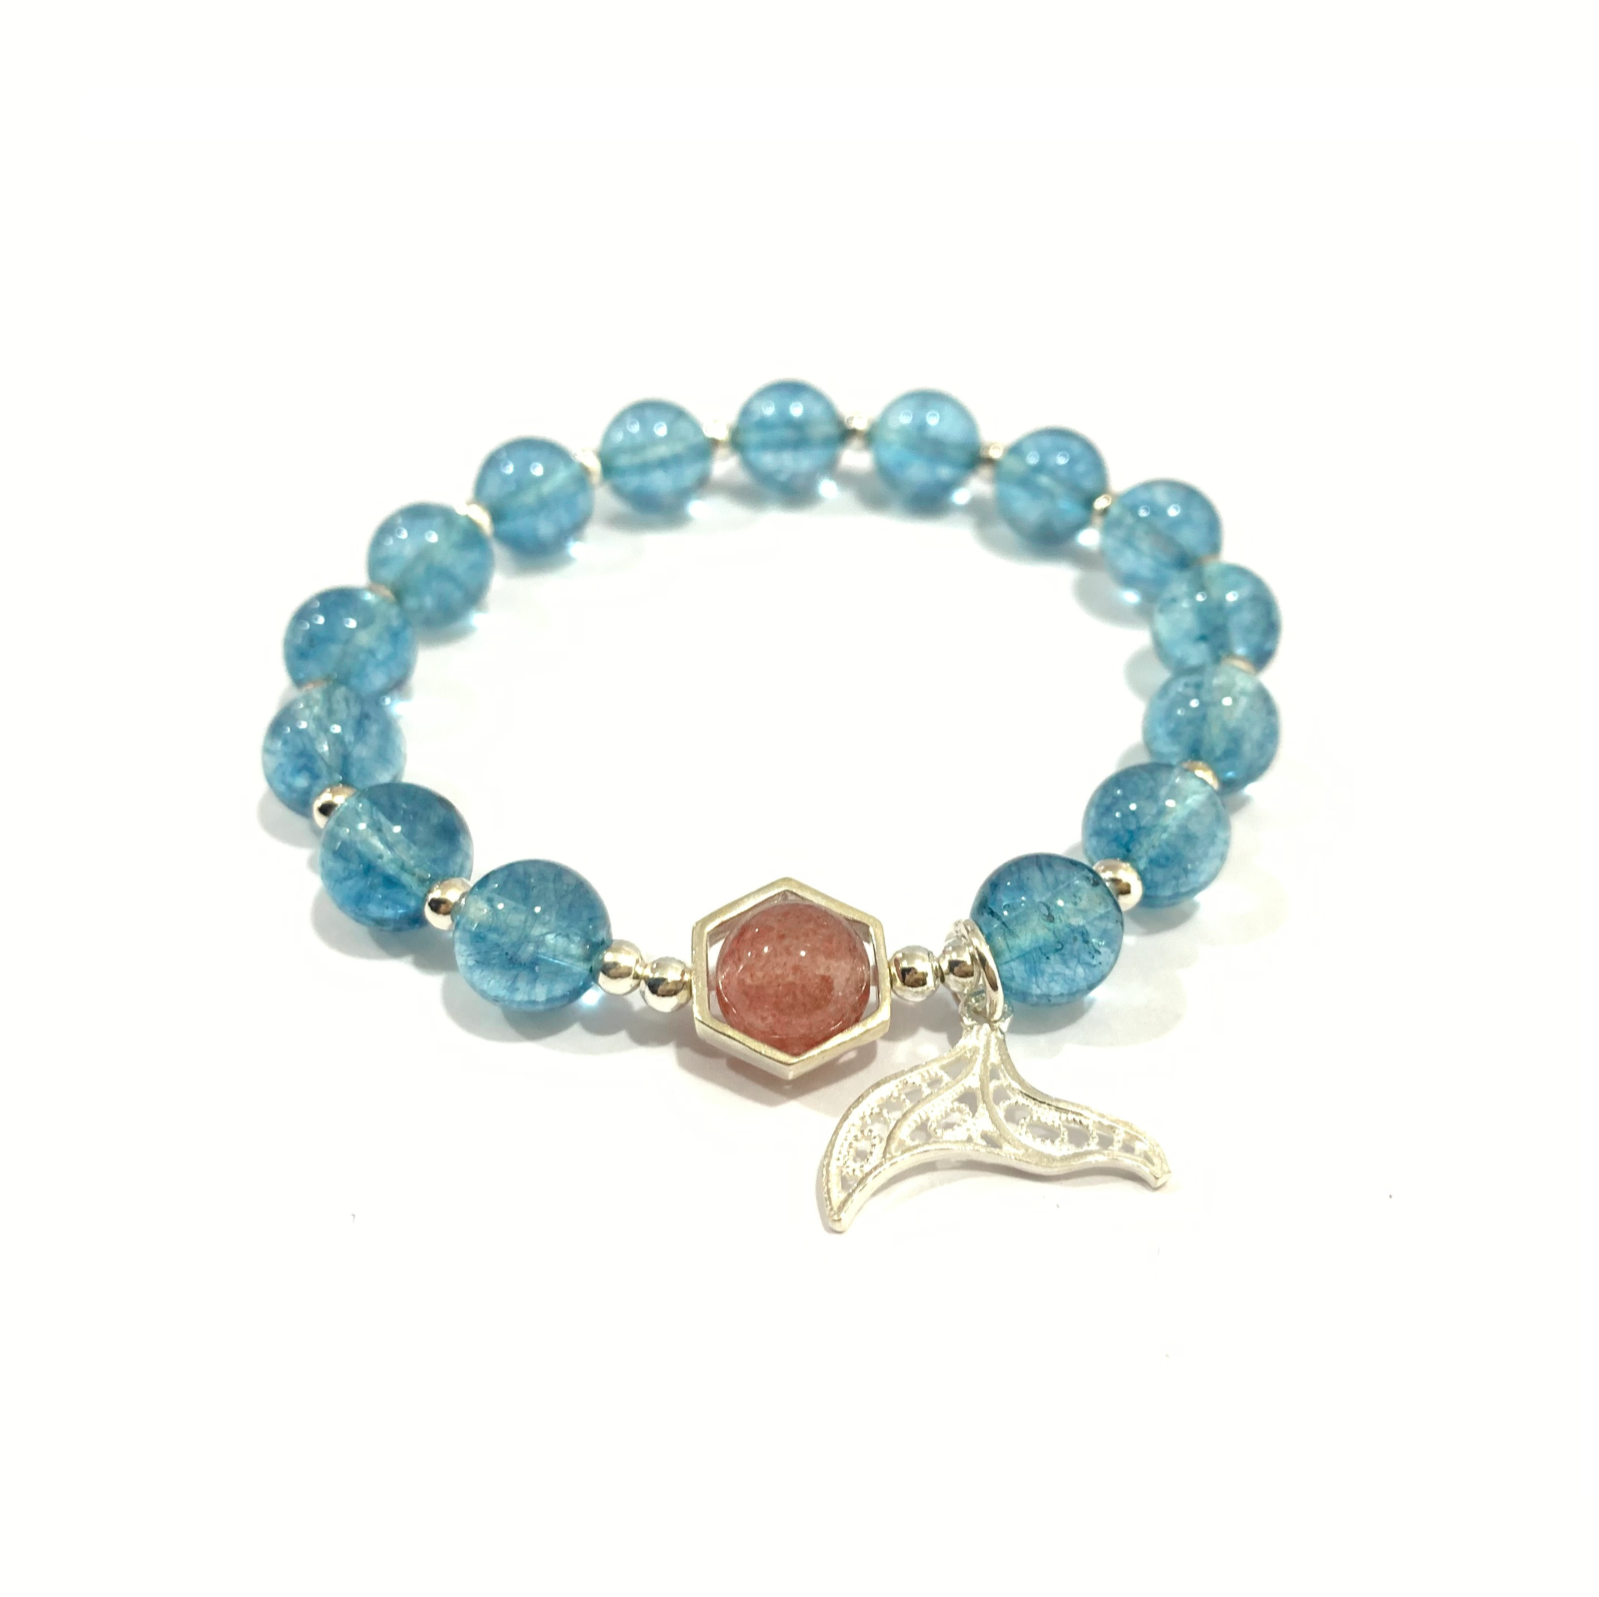 FA001 - Blue crystal mermaid tail bracelet